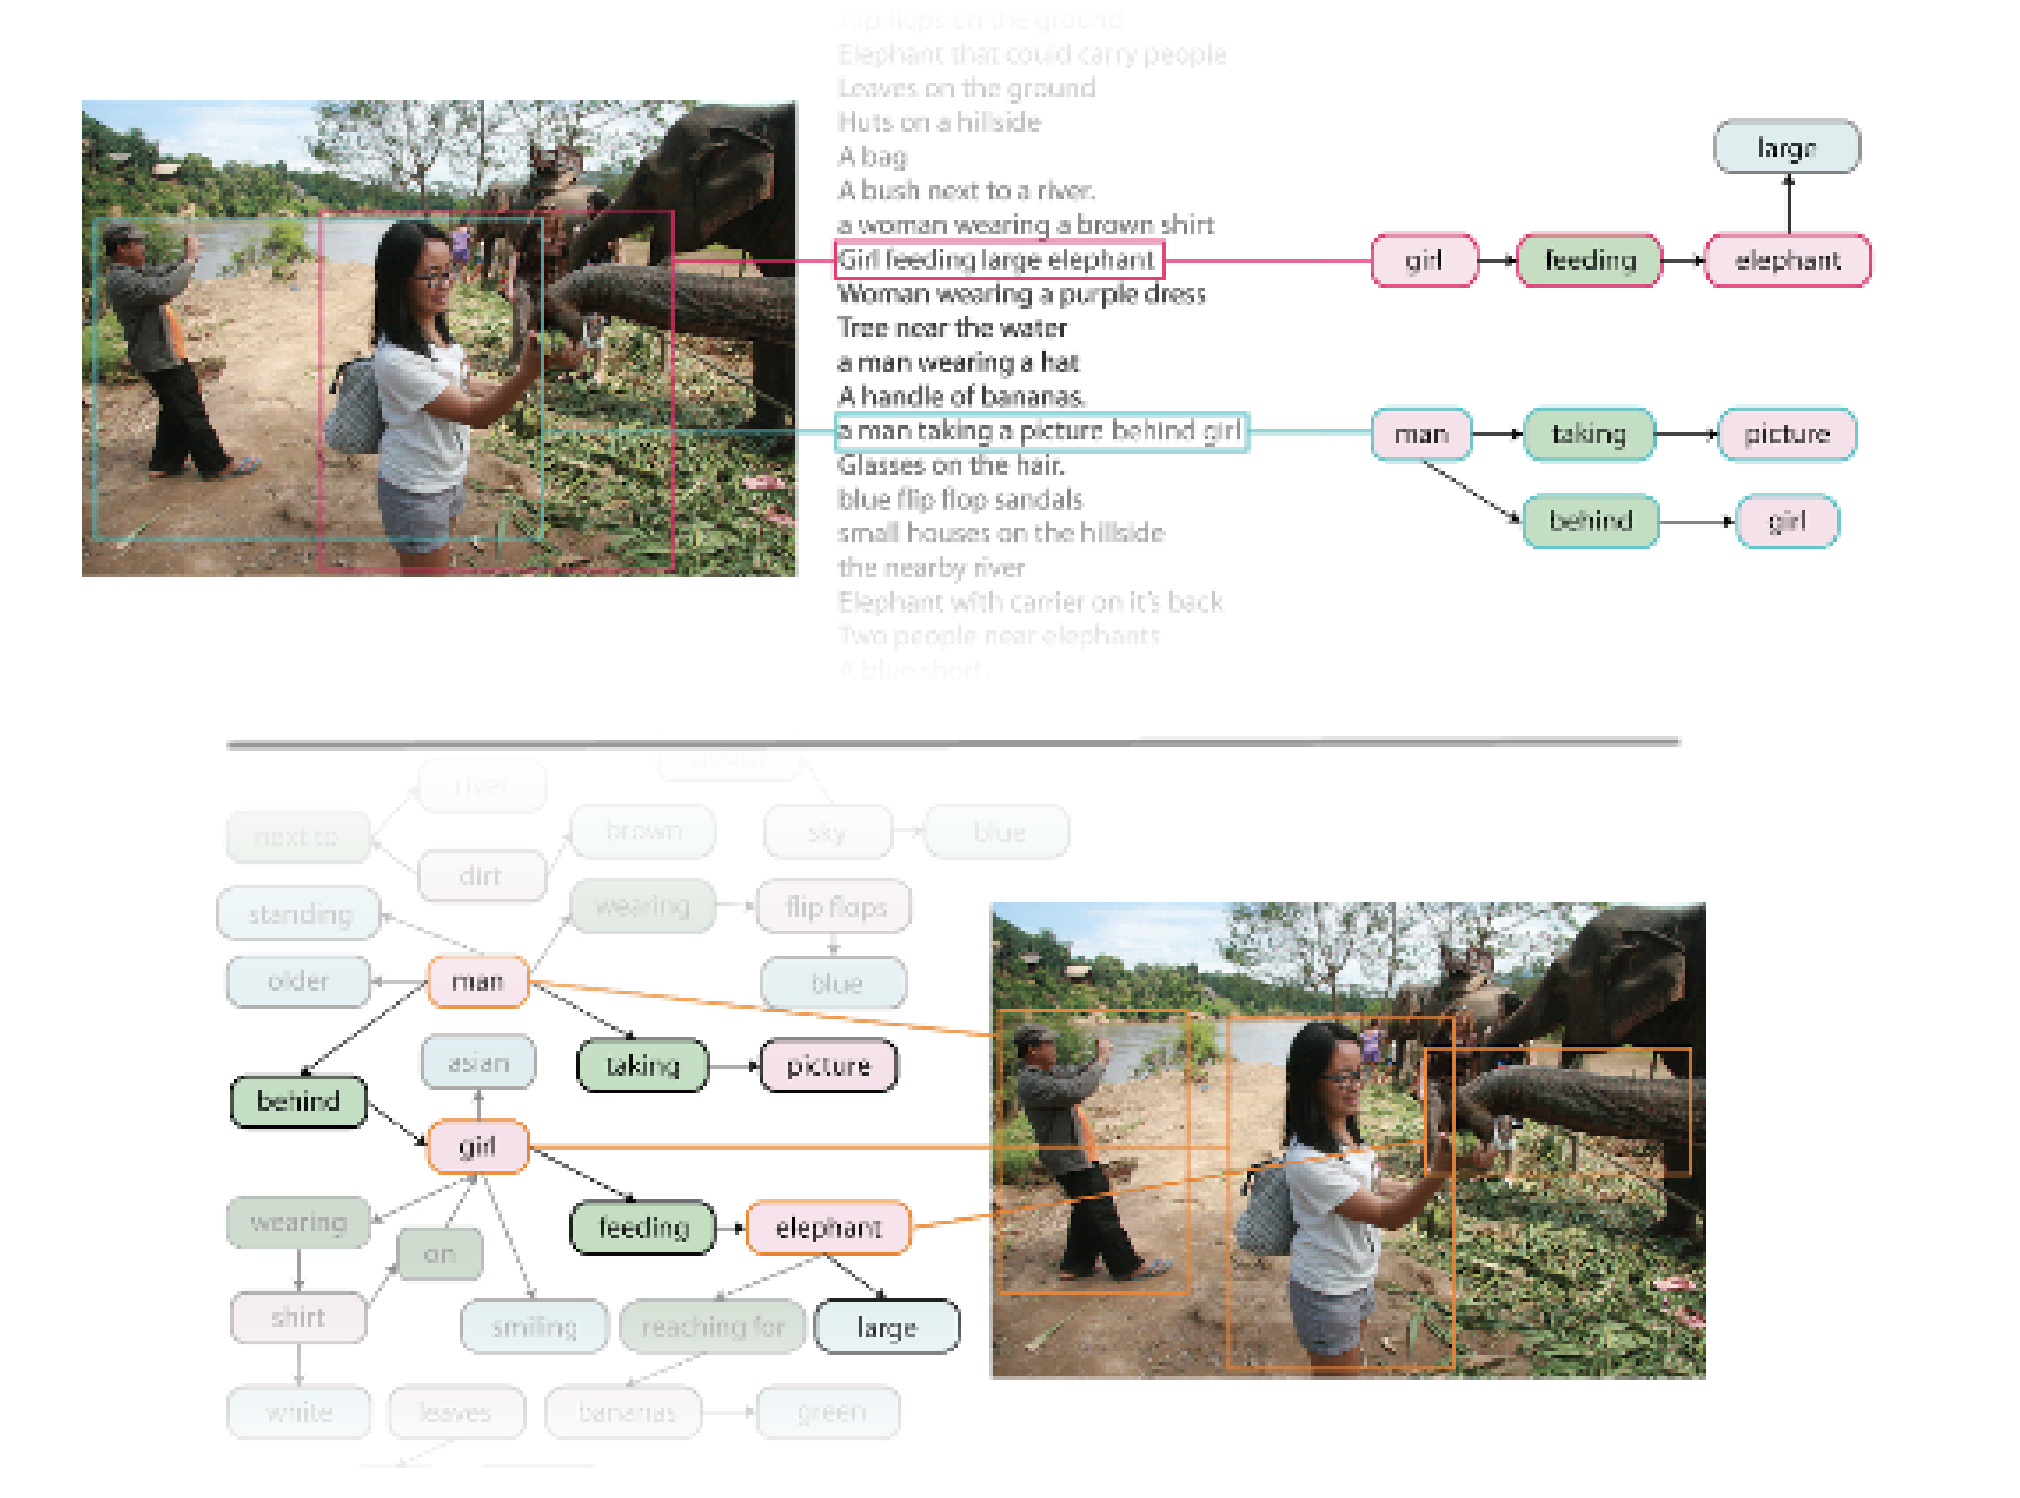 Visual Genome: Connecting Language and Vision Using Crowdsourced Dense Image Annotations Image